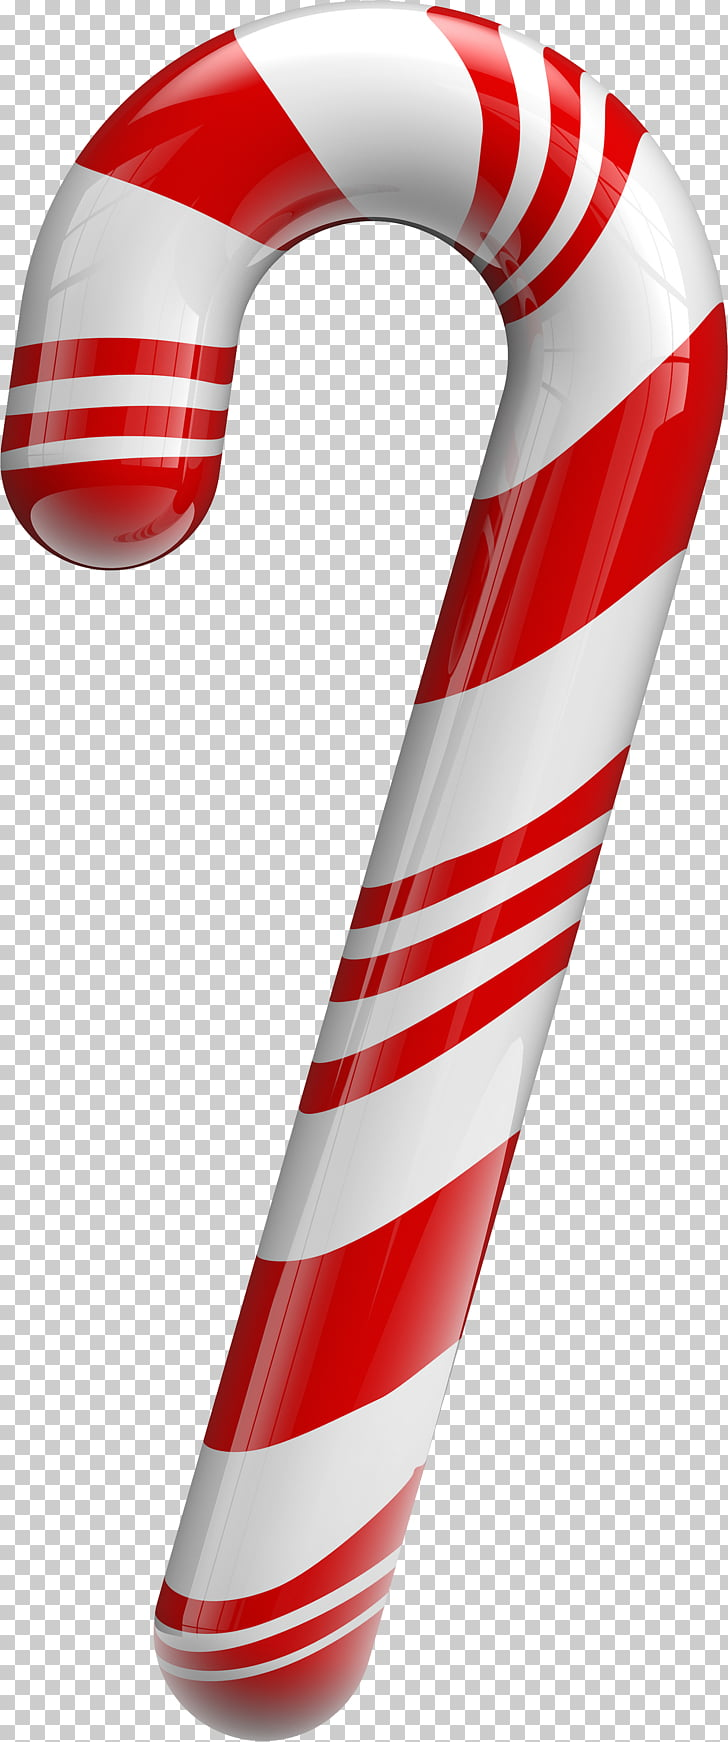 Candy cane Lollipop Christmas , Christmas decorations, candy canes.